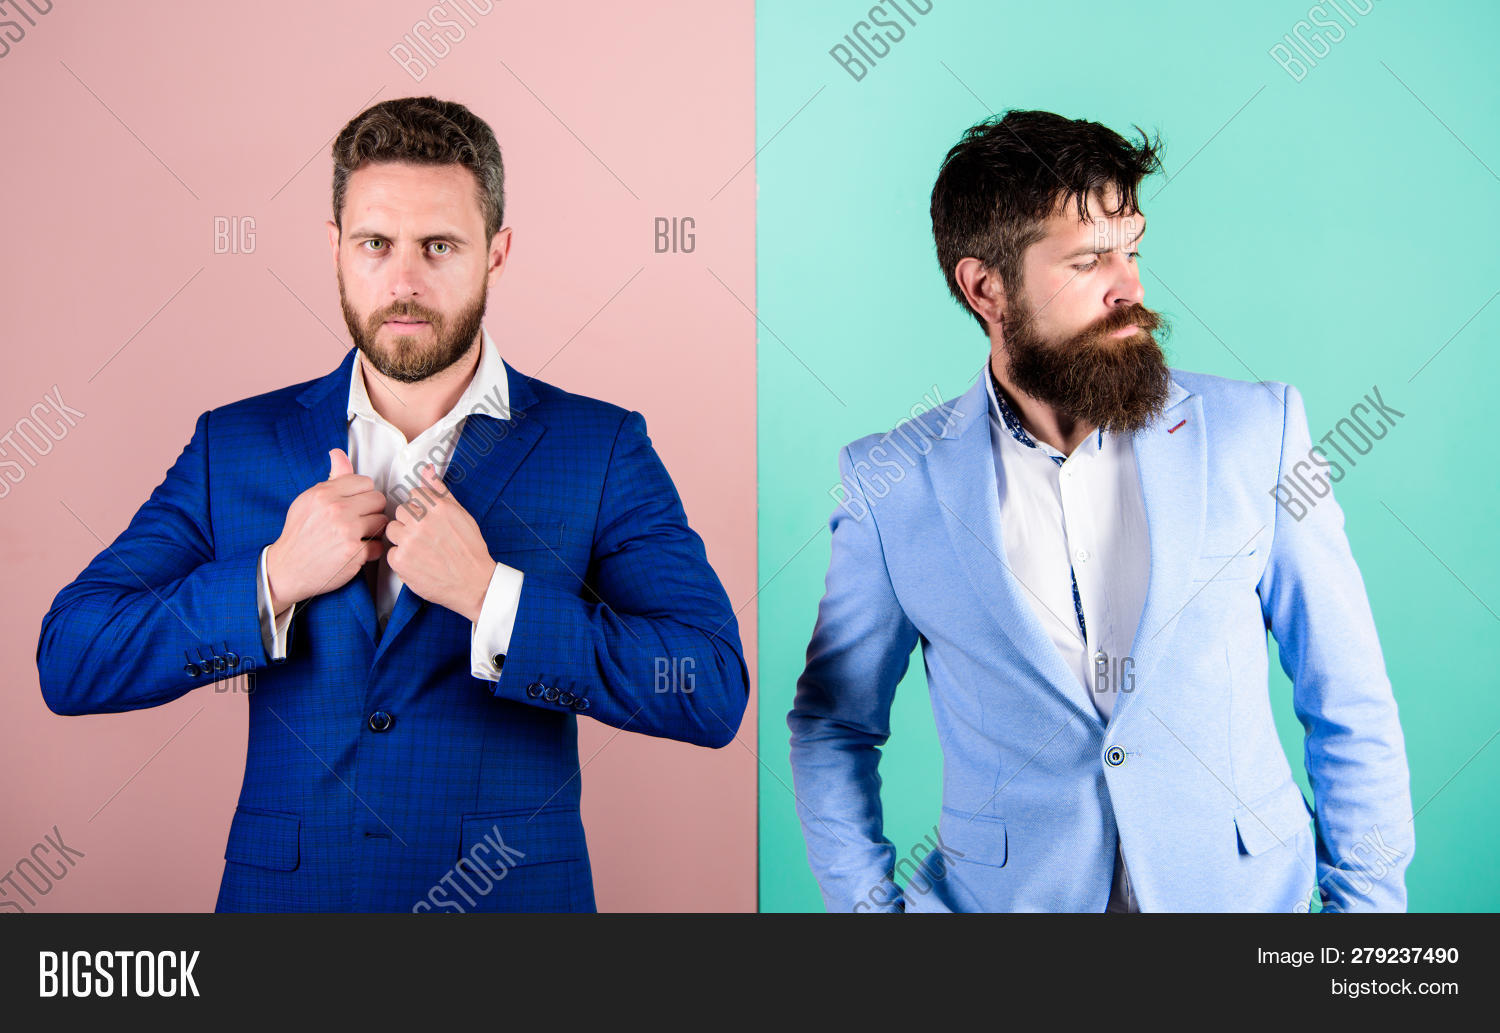 adult,appearance,background,beard,bearded,blue,boss,broker,business,businessman,ceo,confidently,detail,director,employer,entrepreneur,faces,fashion,formal,handsome,hipster,impeccable,jacket,lawyer,luxury,man,manager,men,menswear,mustache,outfit,partner,people,perfect,pink,posing,professional,realtor,reputation,speaker,stand,style,stylish,unshaven